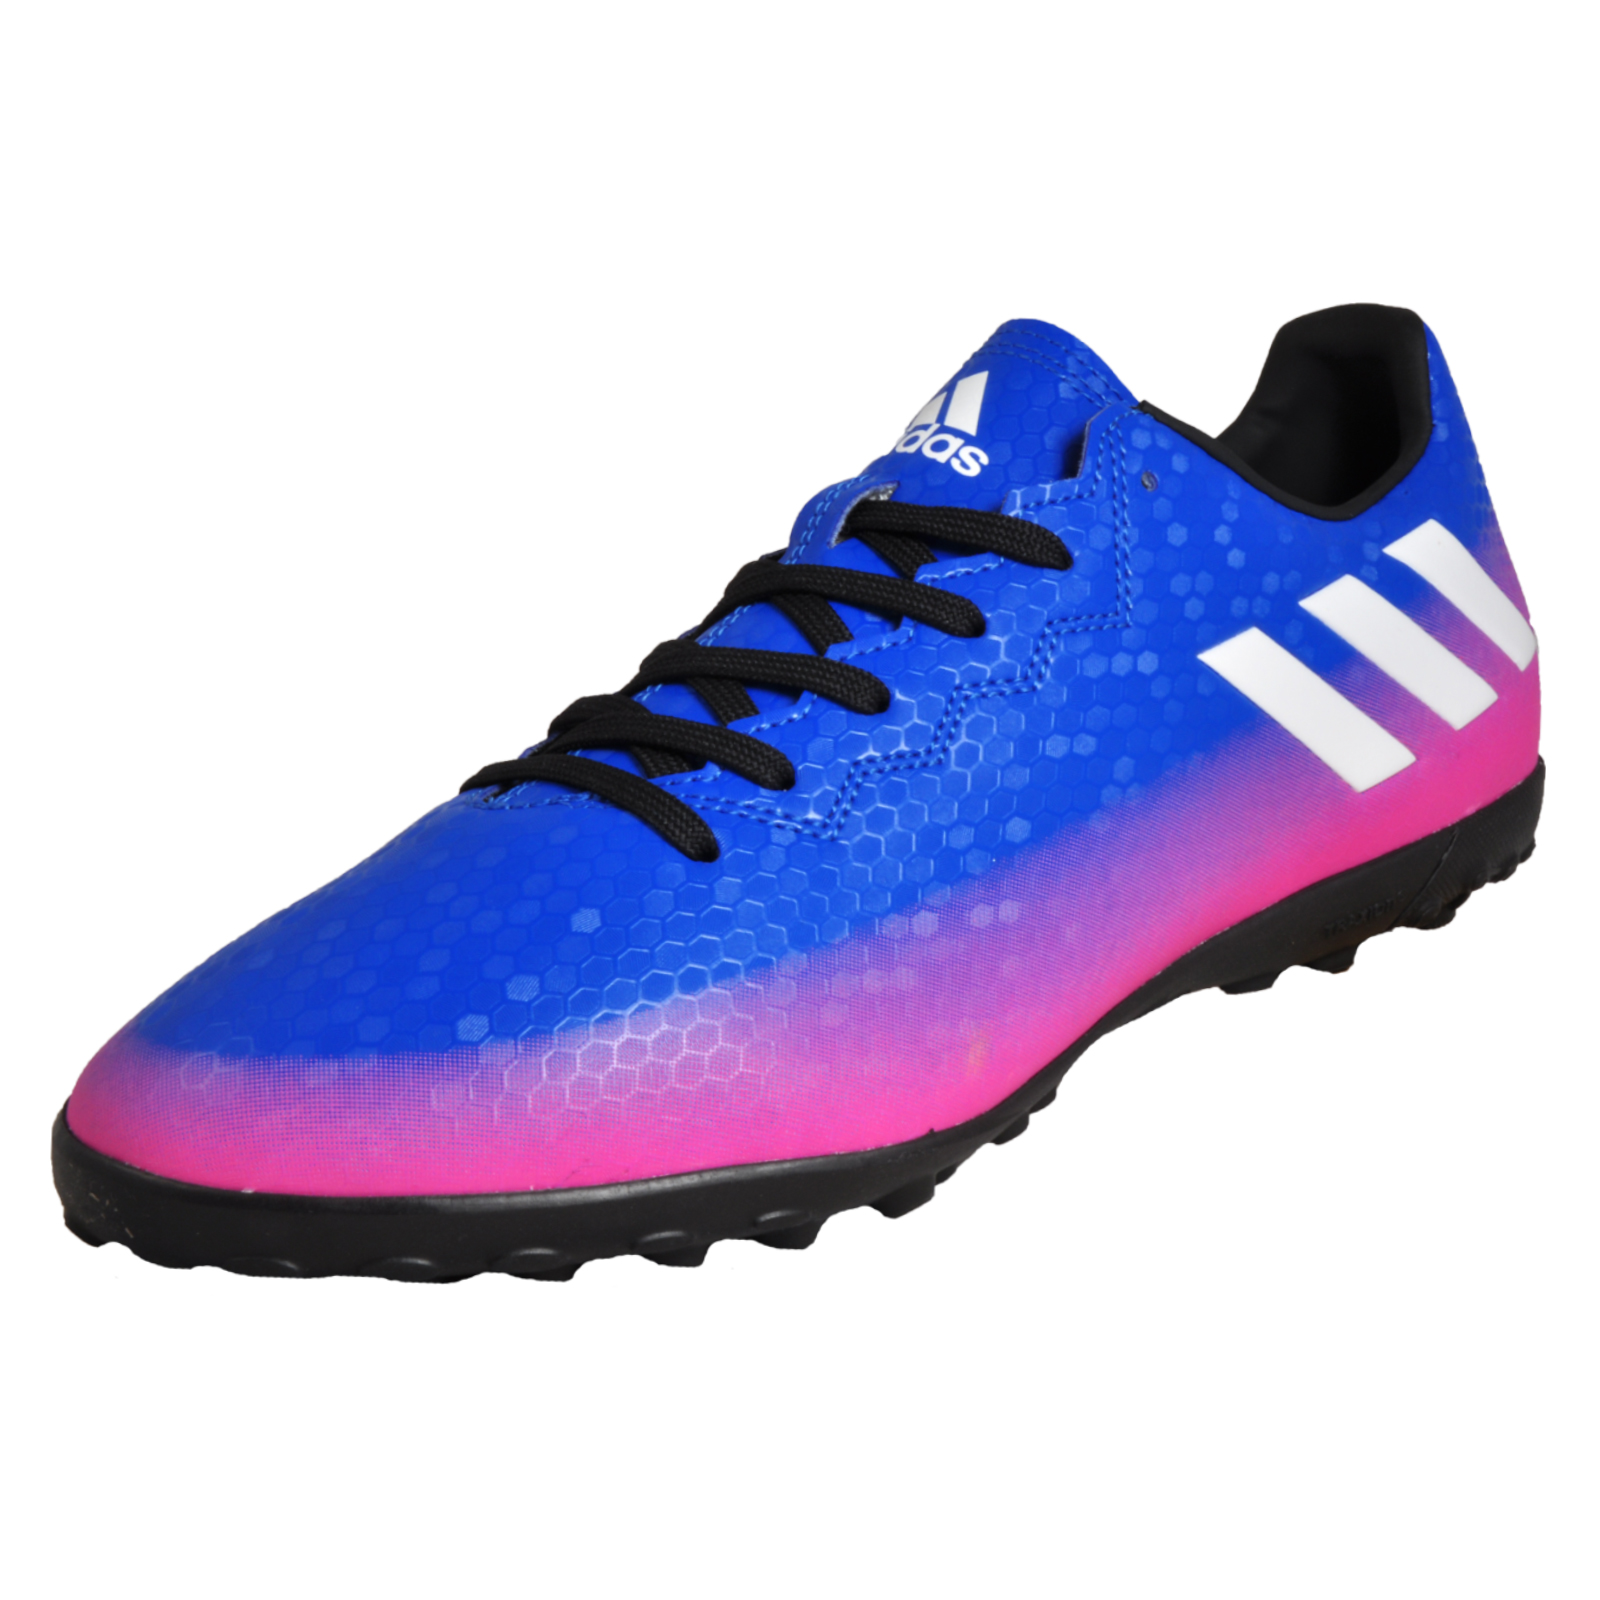 Details about Adidas Messi 16.4 TF Mens Football Turf Astra Indoor Trainers  Blue a66a35a6d6011